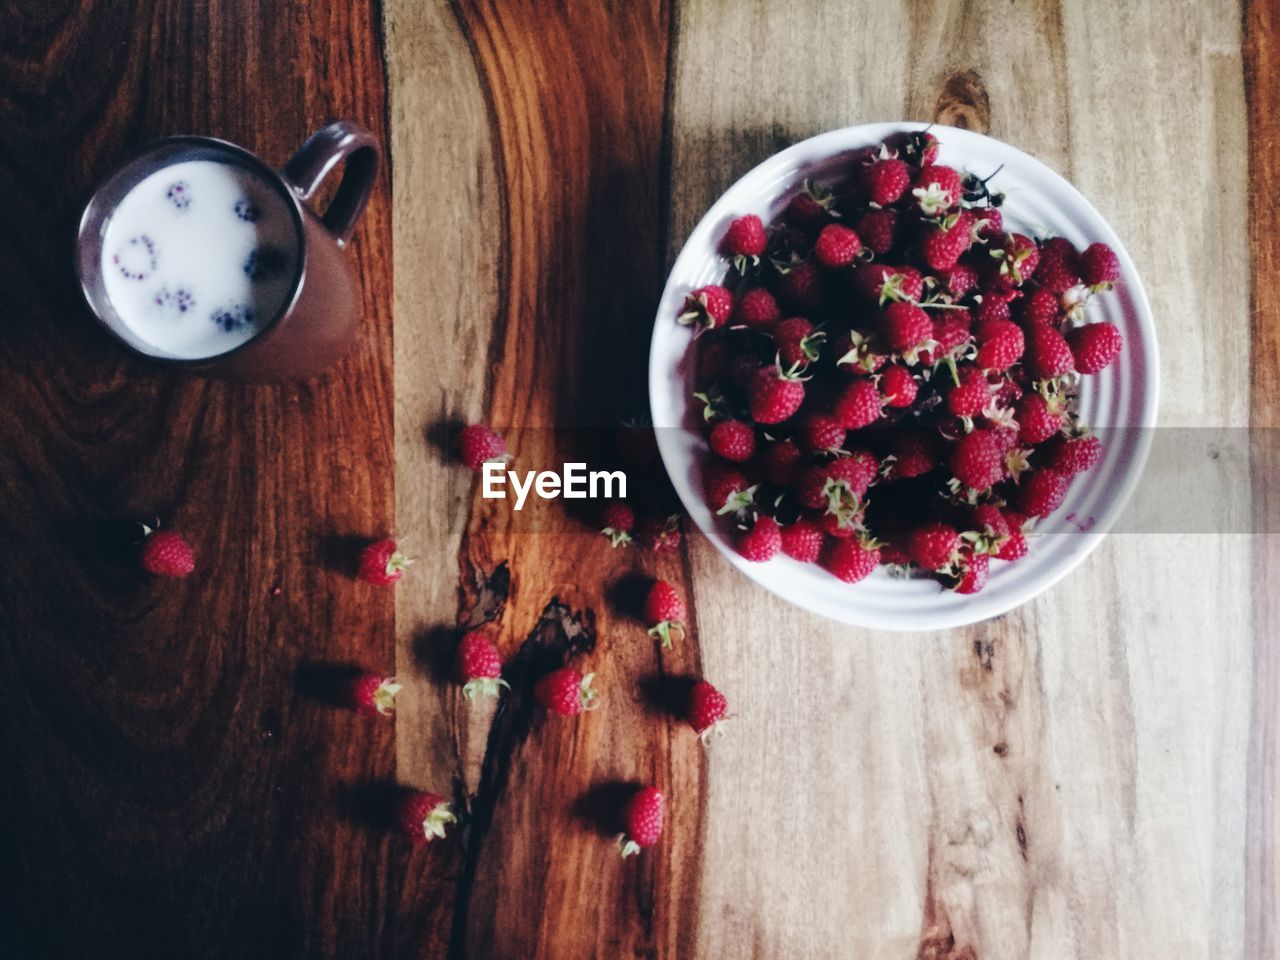 food and drink, table, wood - material, food, fruit, freshness, bowl, directly above, high angle view, raspberry, sweet food, indoors, indulgence, dessert, temptation, blueberry, no people, pomegranate seed, ready-to-eat, pomegranate, healthy eating, close-up, day